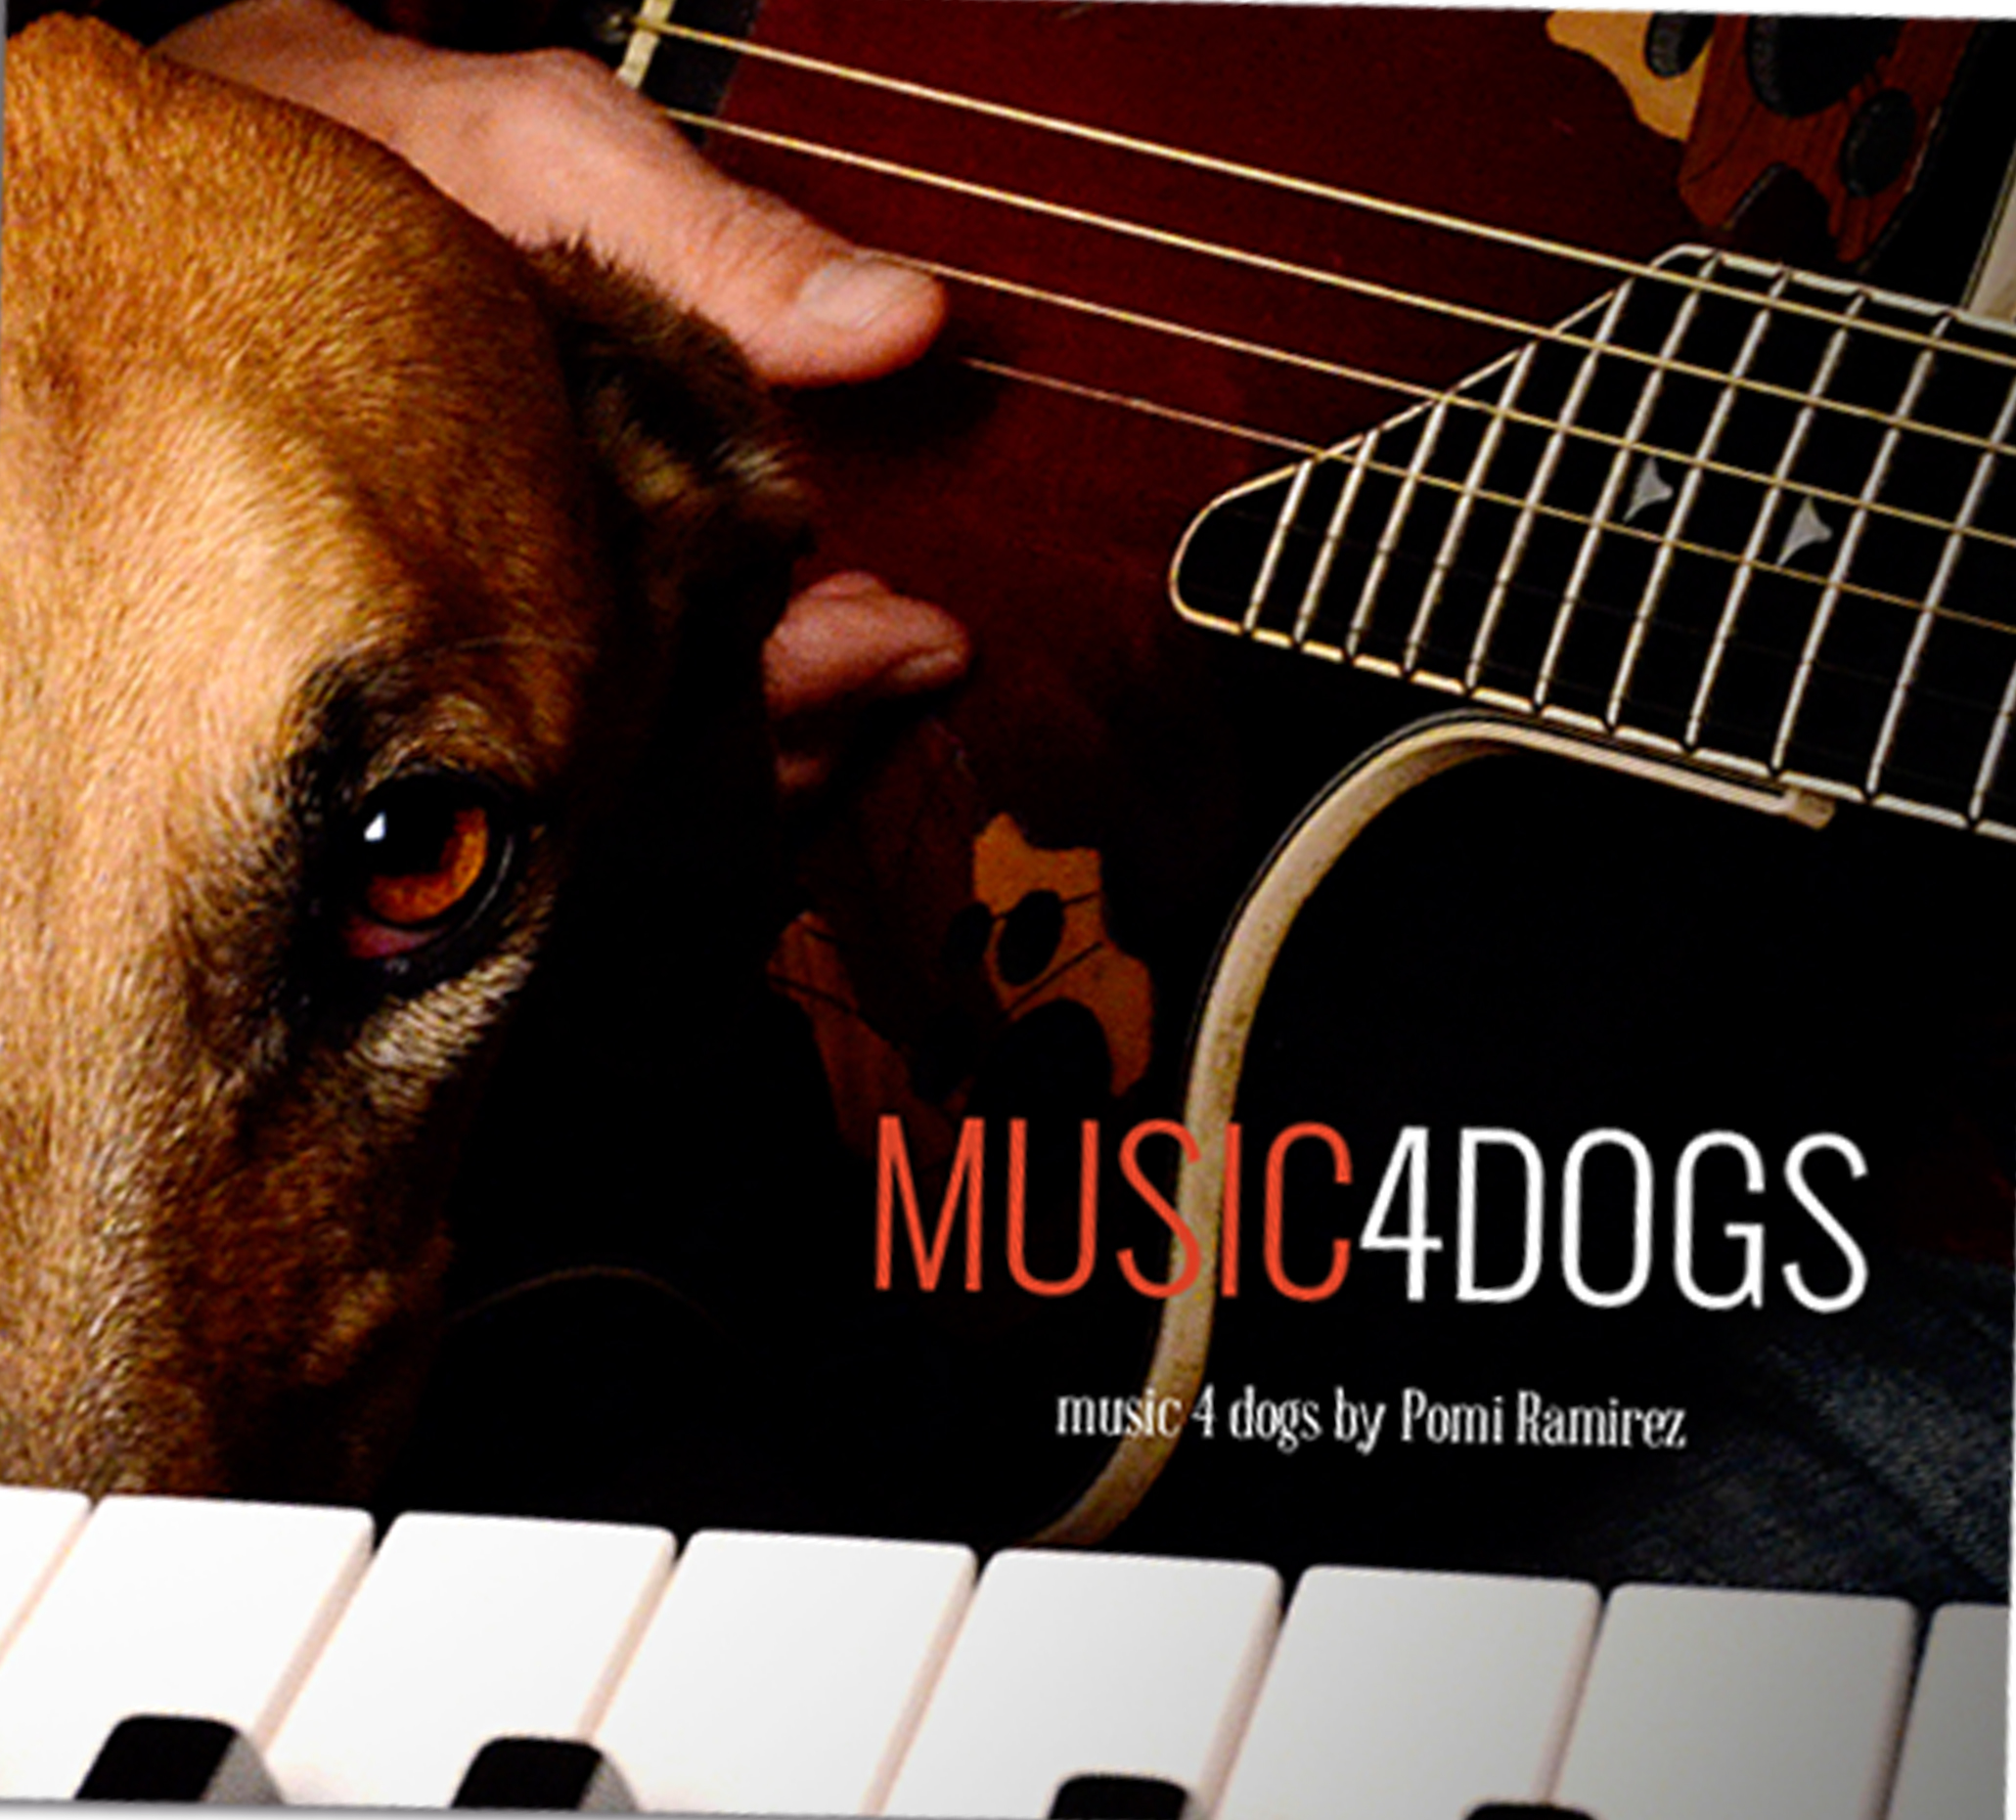 CONCERT4DOGS